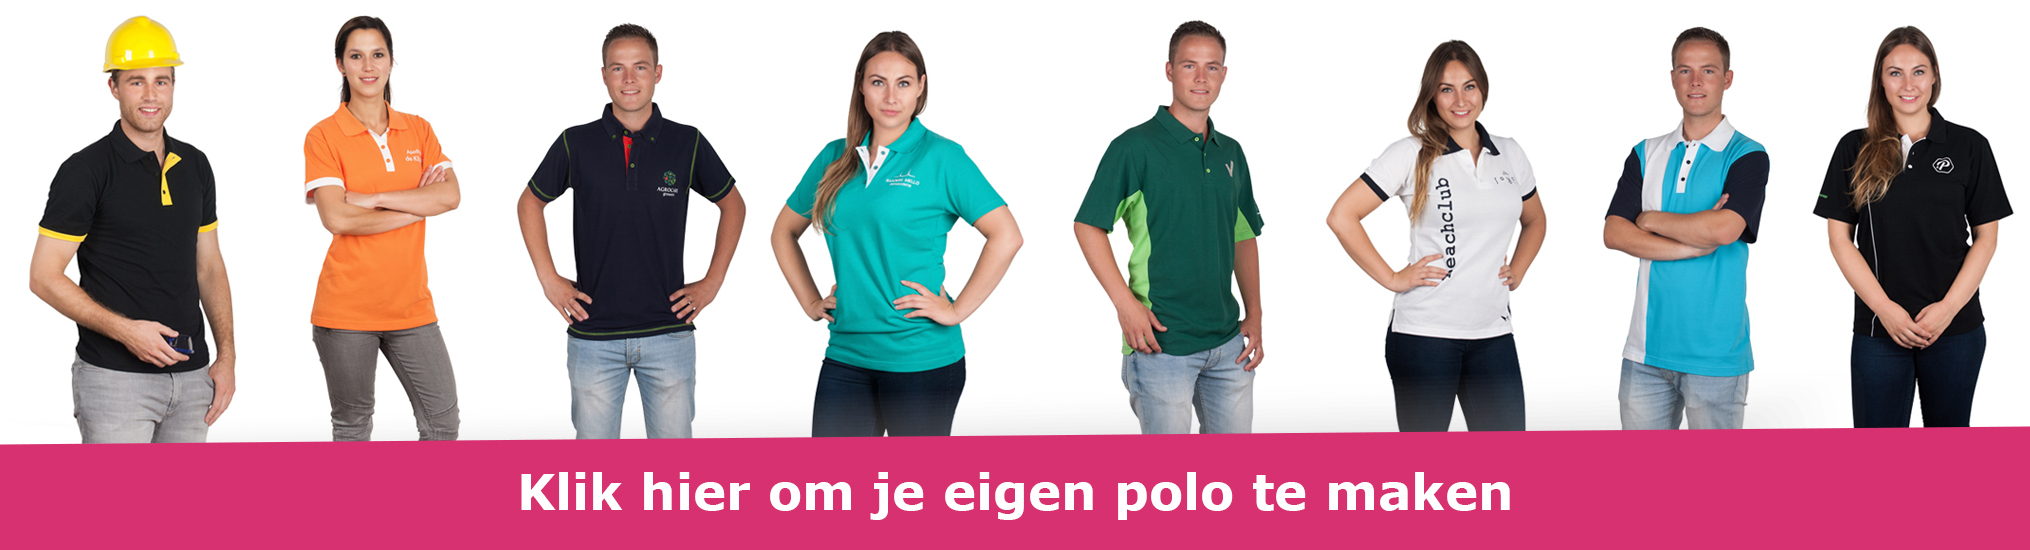 polo-configurator-wessels-workwear